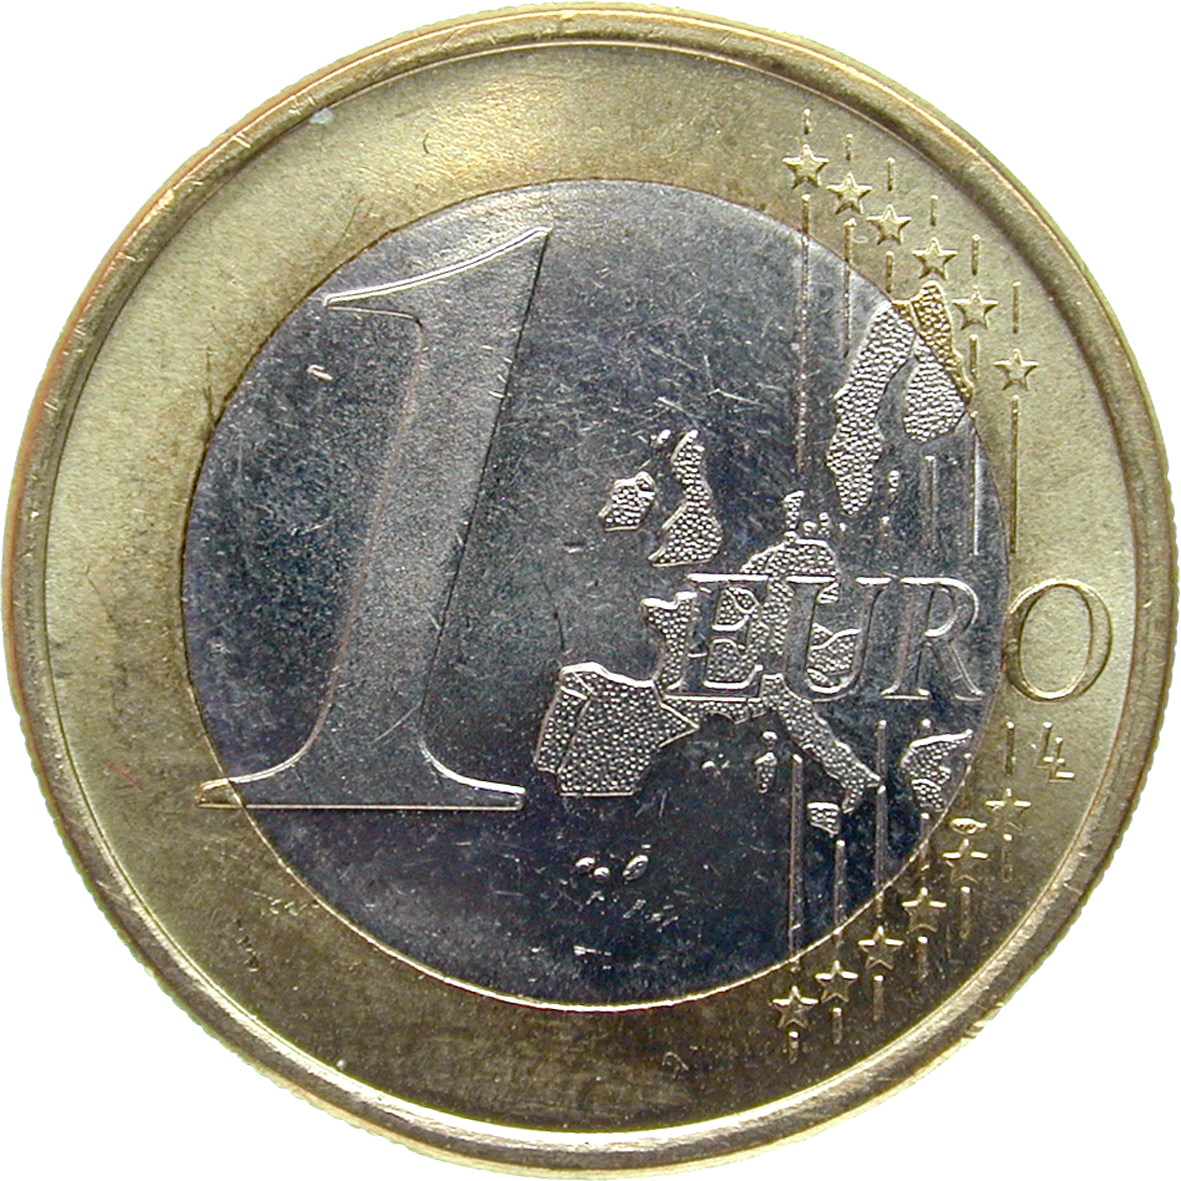 Federal Republic of Germany, 1 Euro 2002 (obverse)